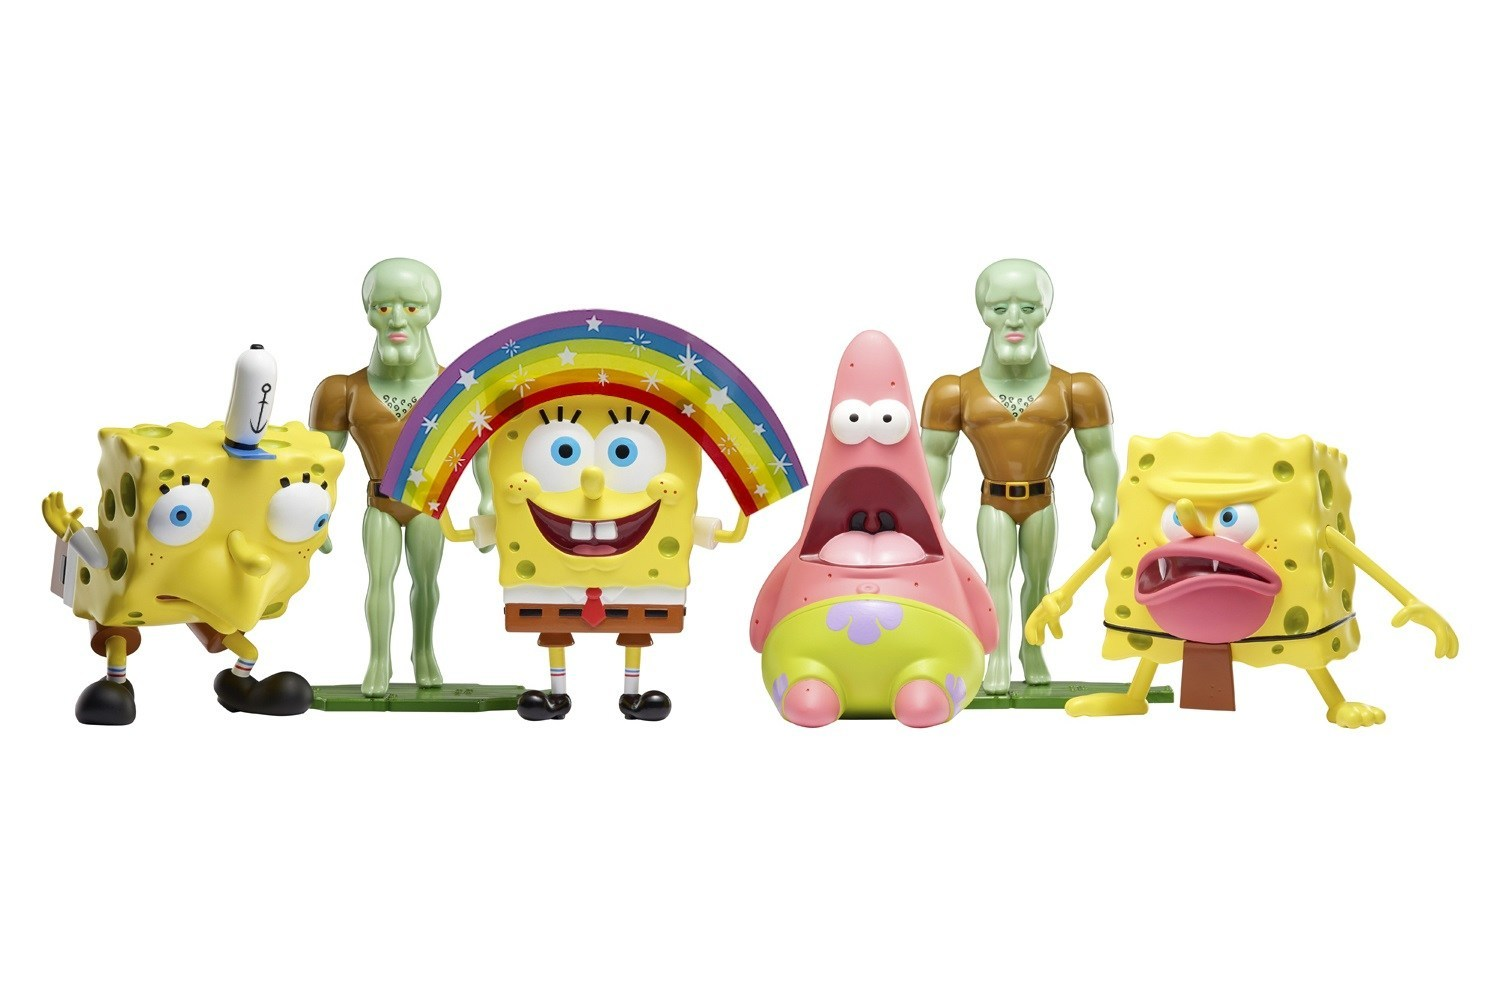 Alpha groups brand new spongebob squarepants product line is certain to excite a multi generation fan base masterpiece memes figures bring to life